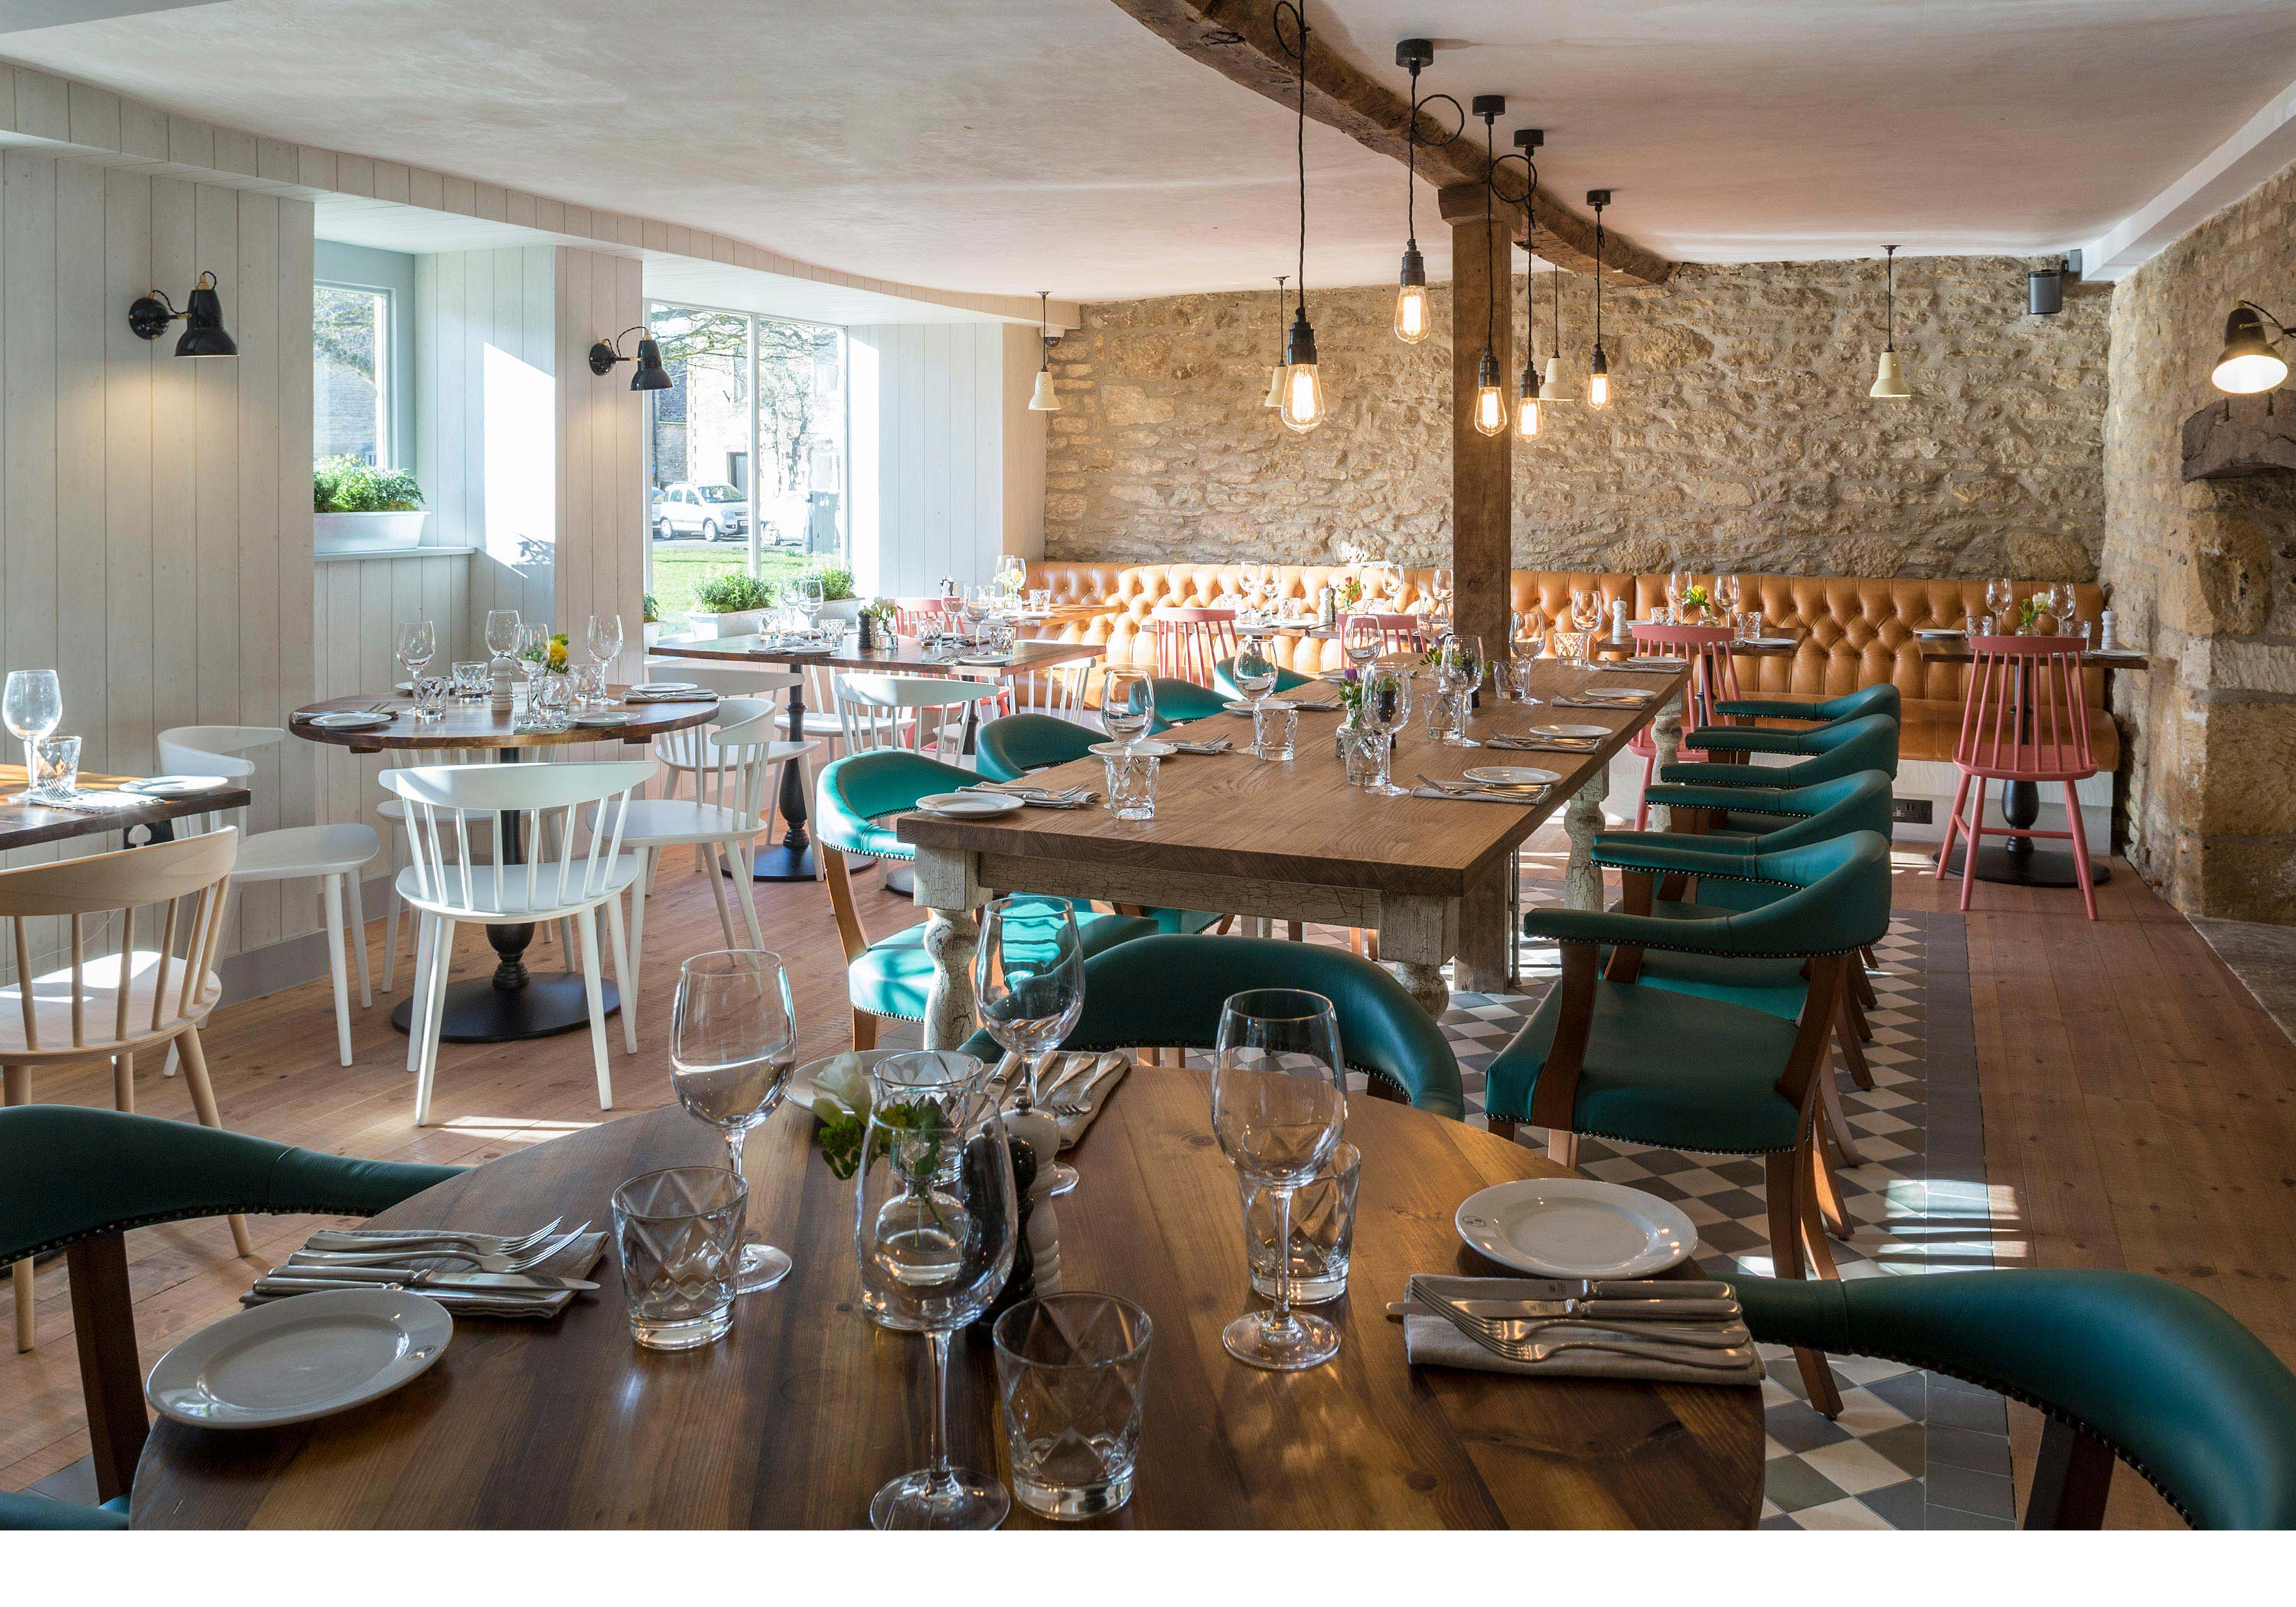 Restaurant photography for The Old Stocks Inn by Mighty, hotel marketing agency